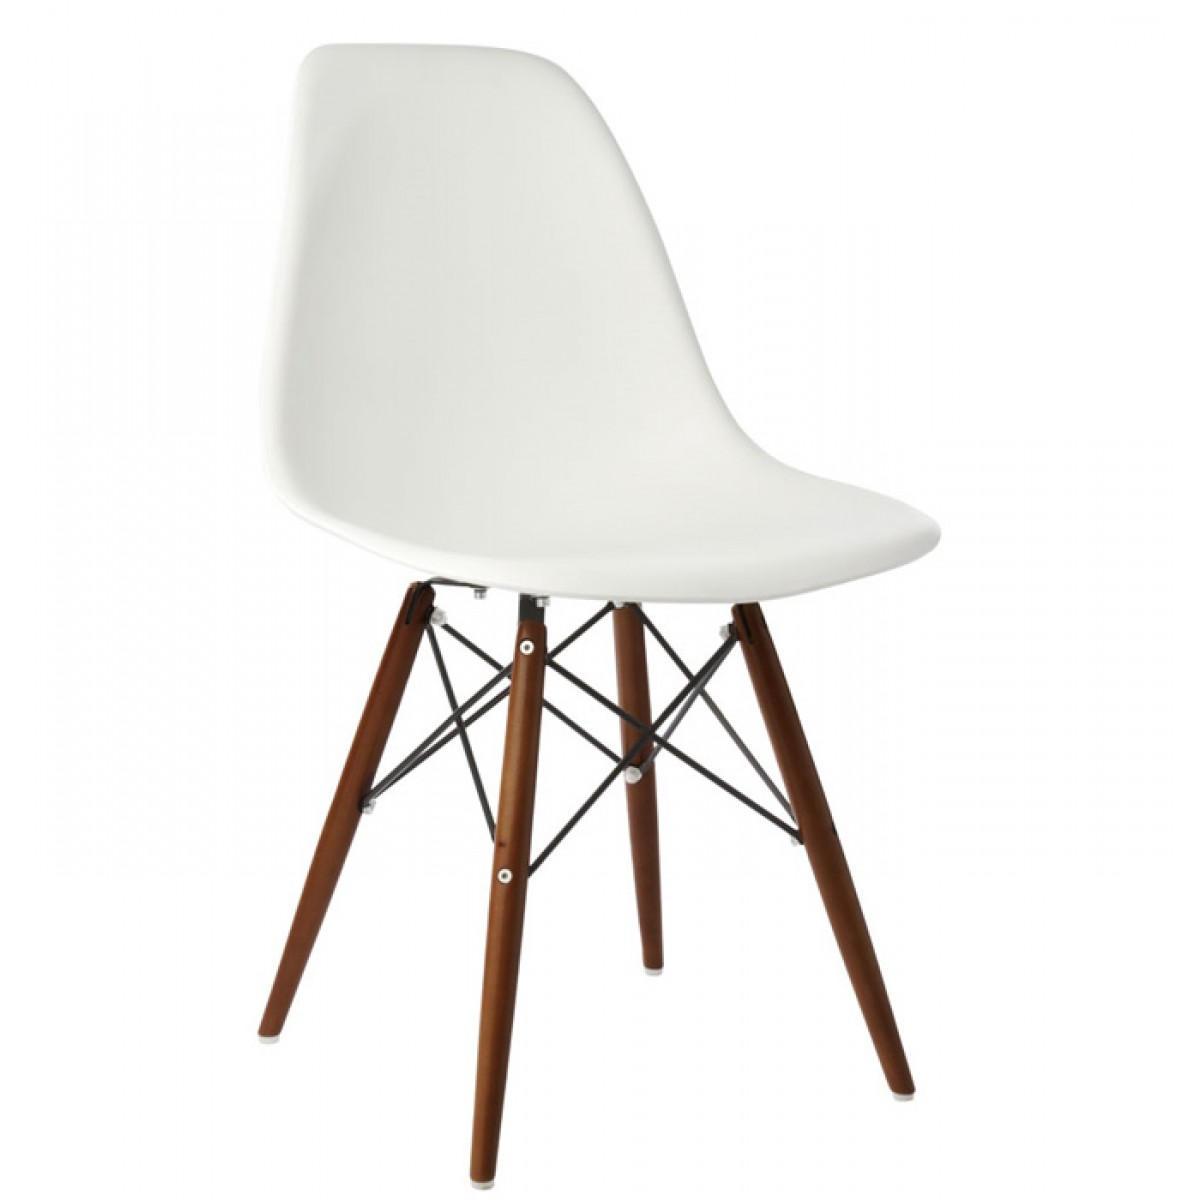 eames chair white john lewis garden covers style dsw molded plastic dining shell with dark walnut wood eiffel legs